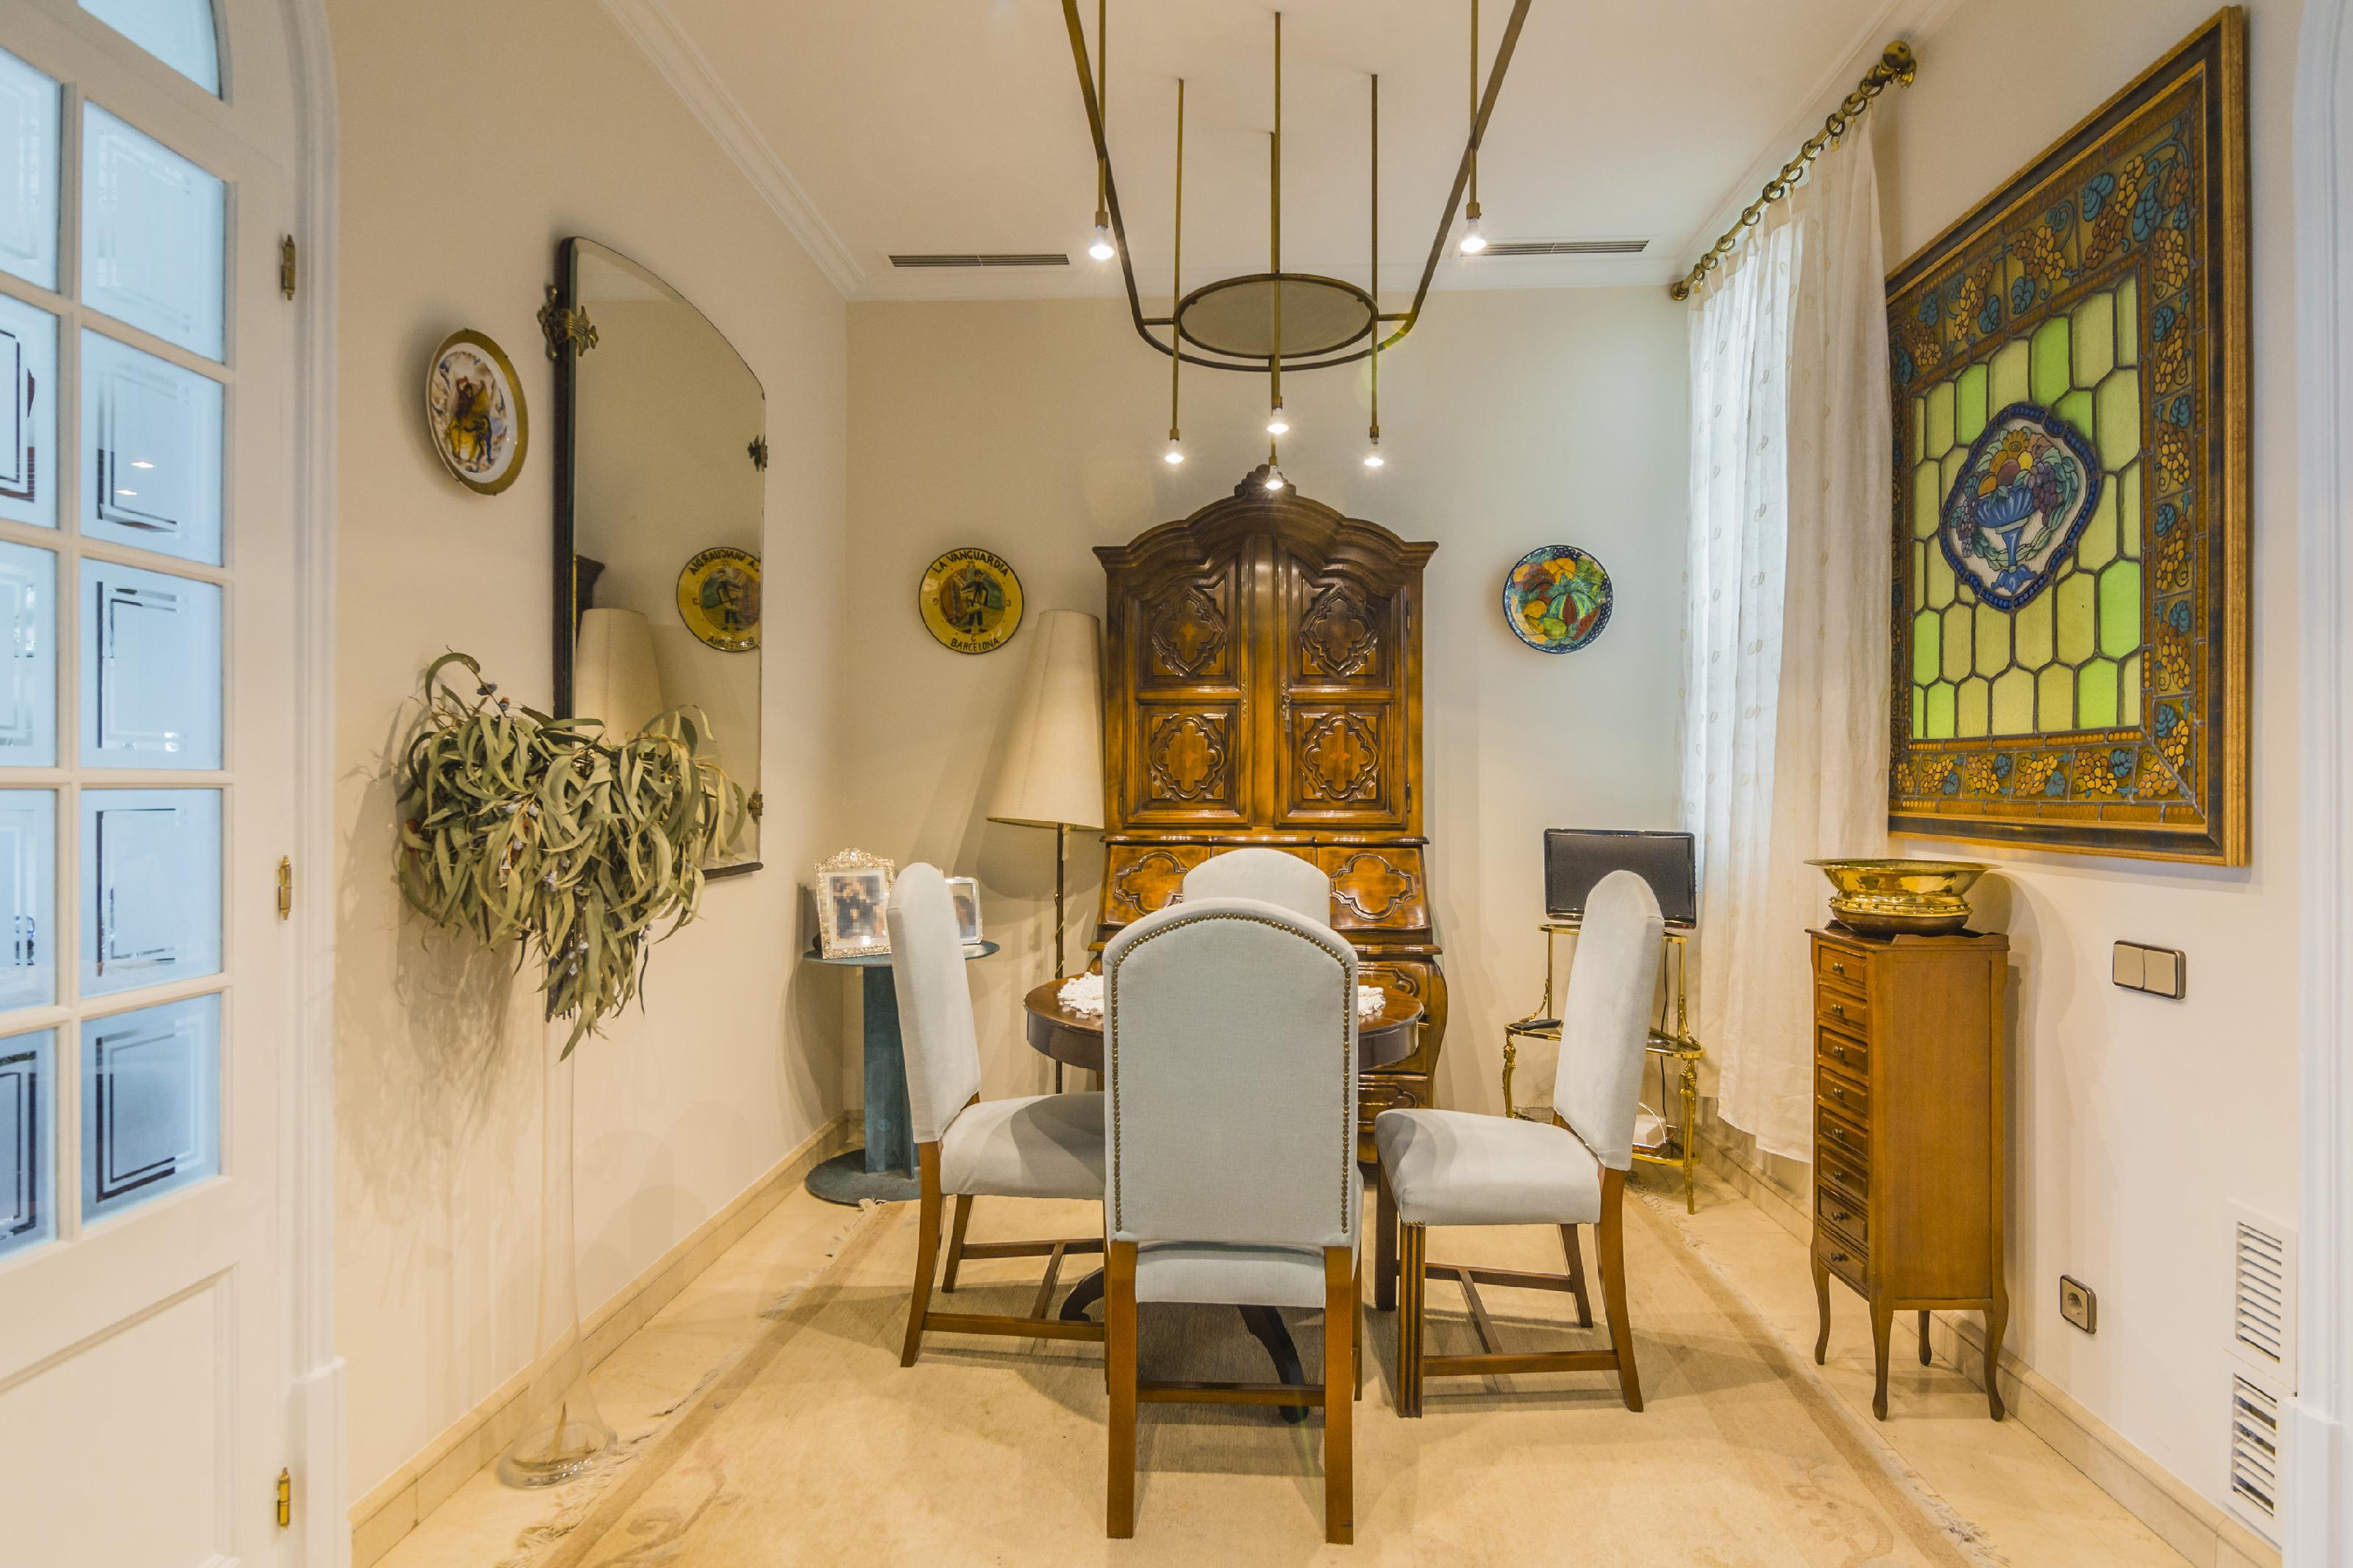 87800 Apartment for sale in Eixample, Dreta Eixample 10